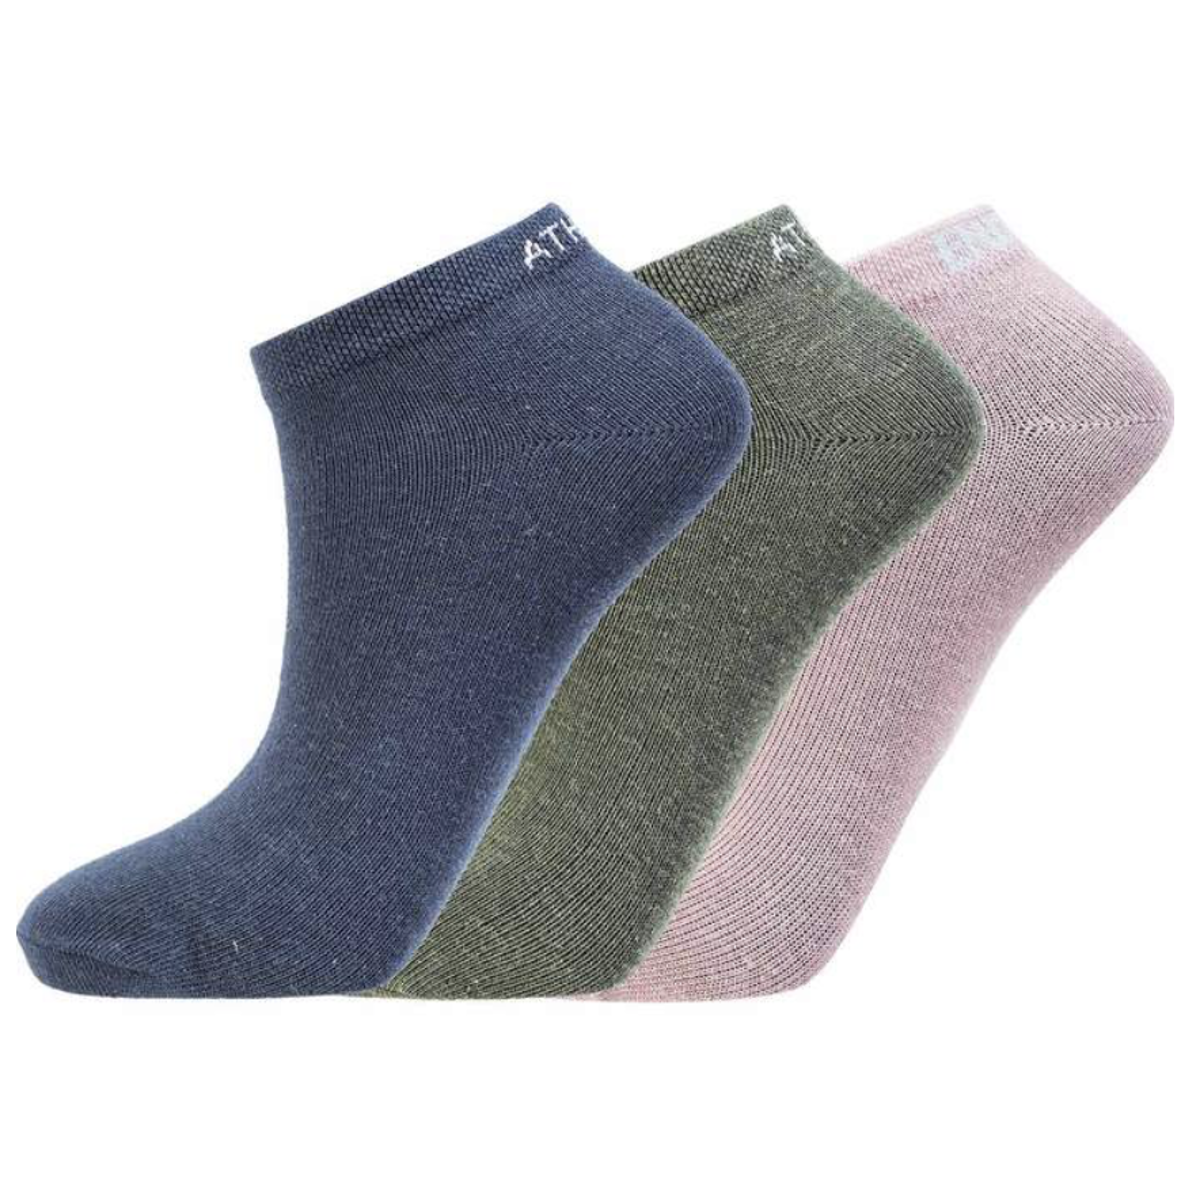 Bilde av Athlecia Bonie Low Cut Sock 3-pack -Dark Sapphire 2101 EA193772